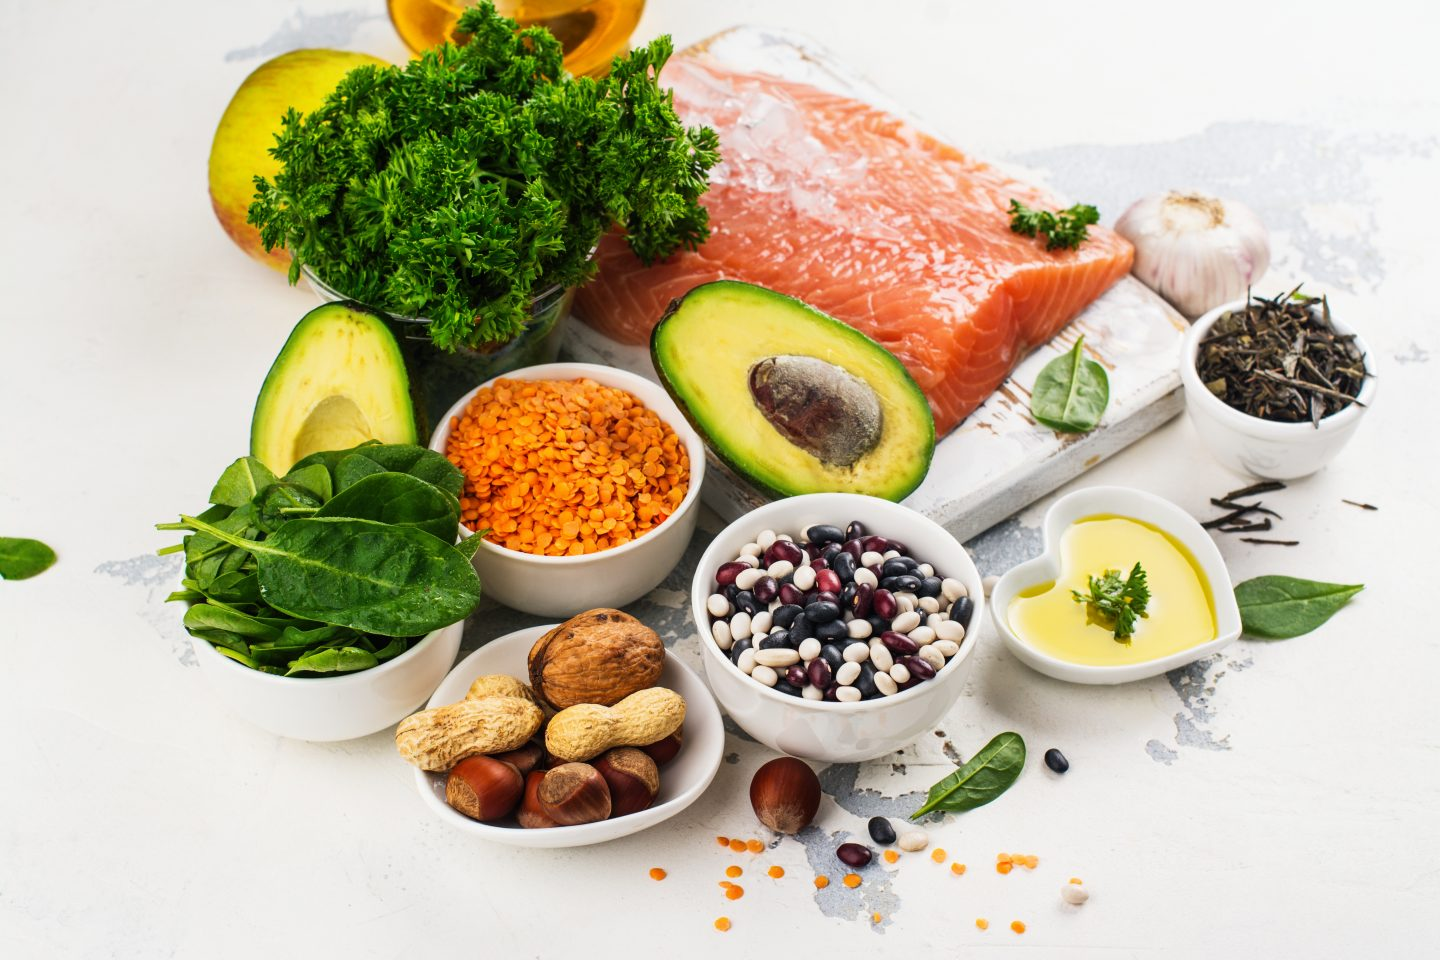 Low colesterol food, like avocado, salmon and nuts placed on a white surface. adidas, GamePlan A, health, fitness, nutrition, weight loss, muscles